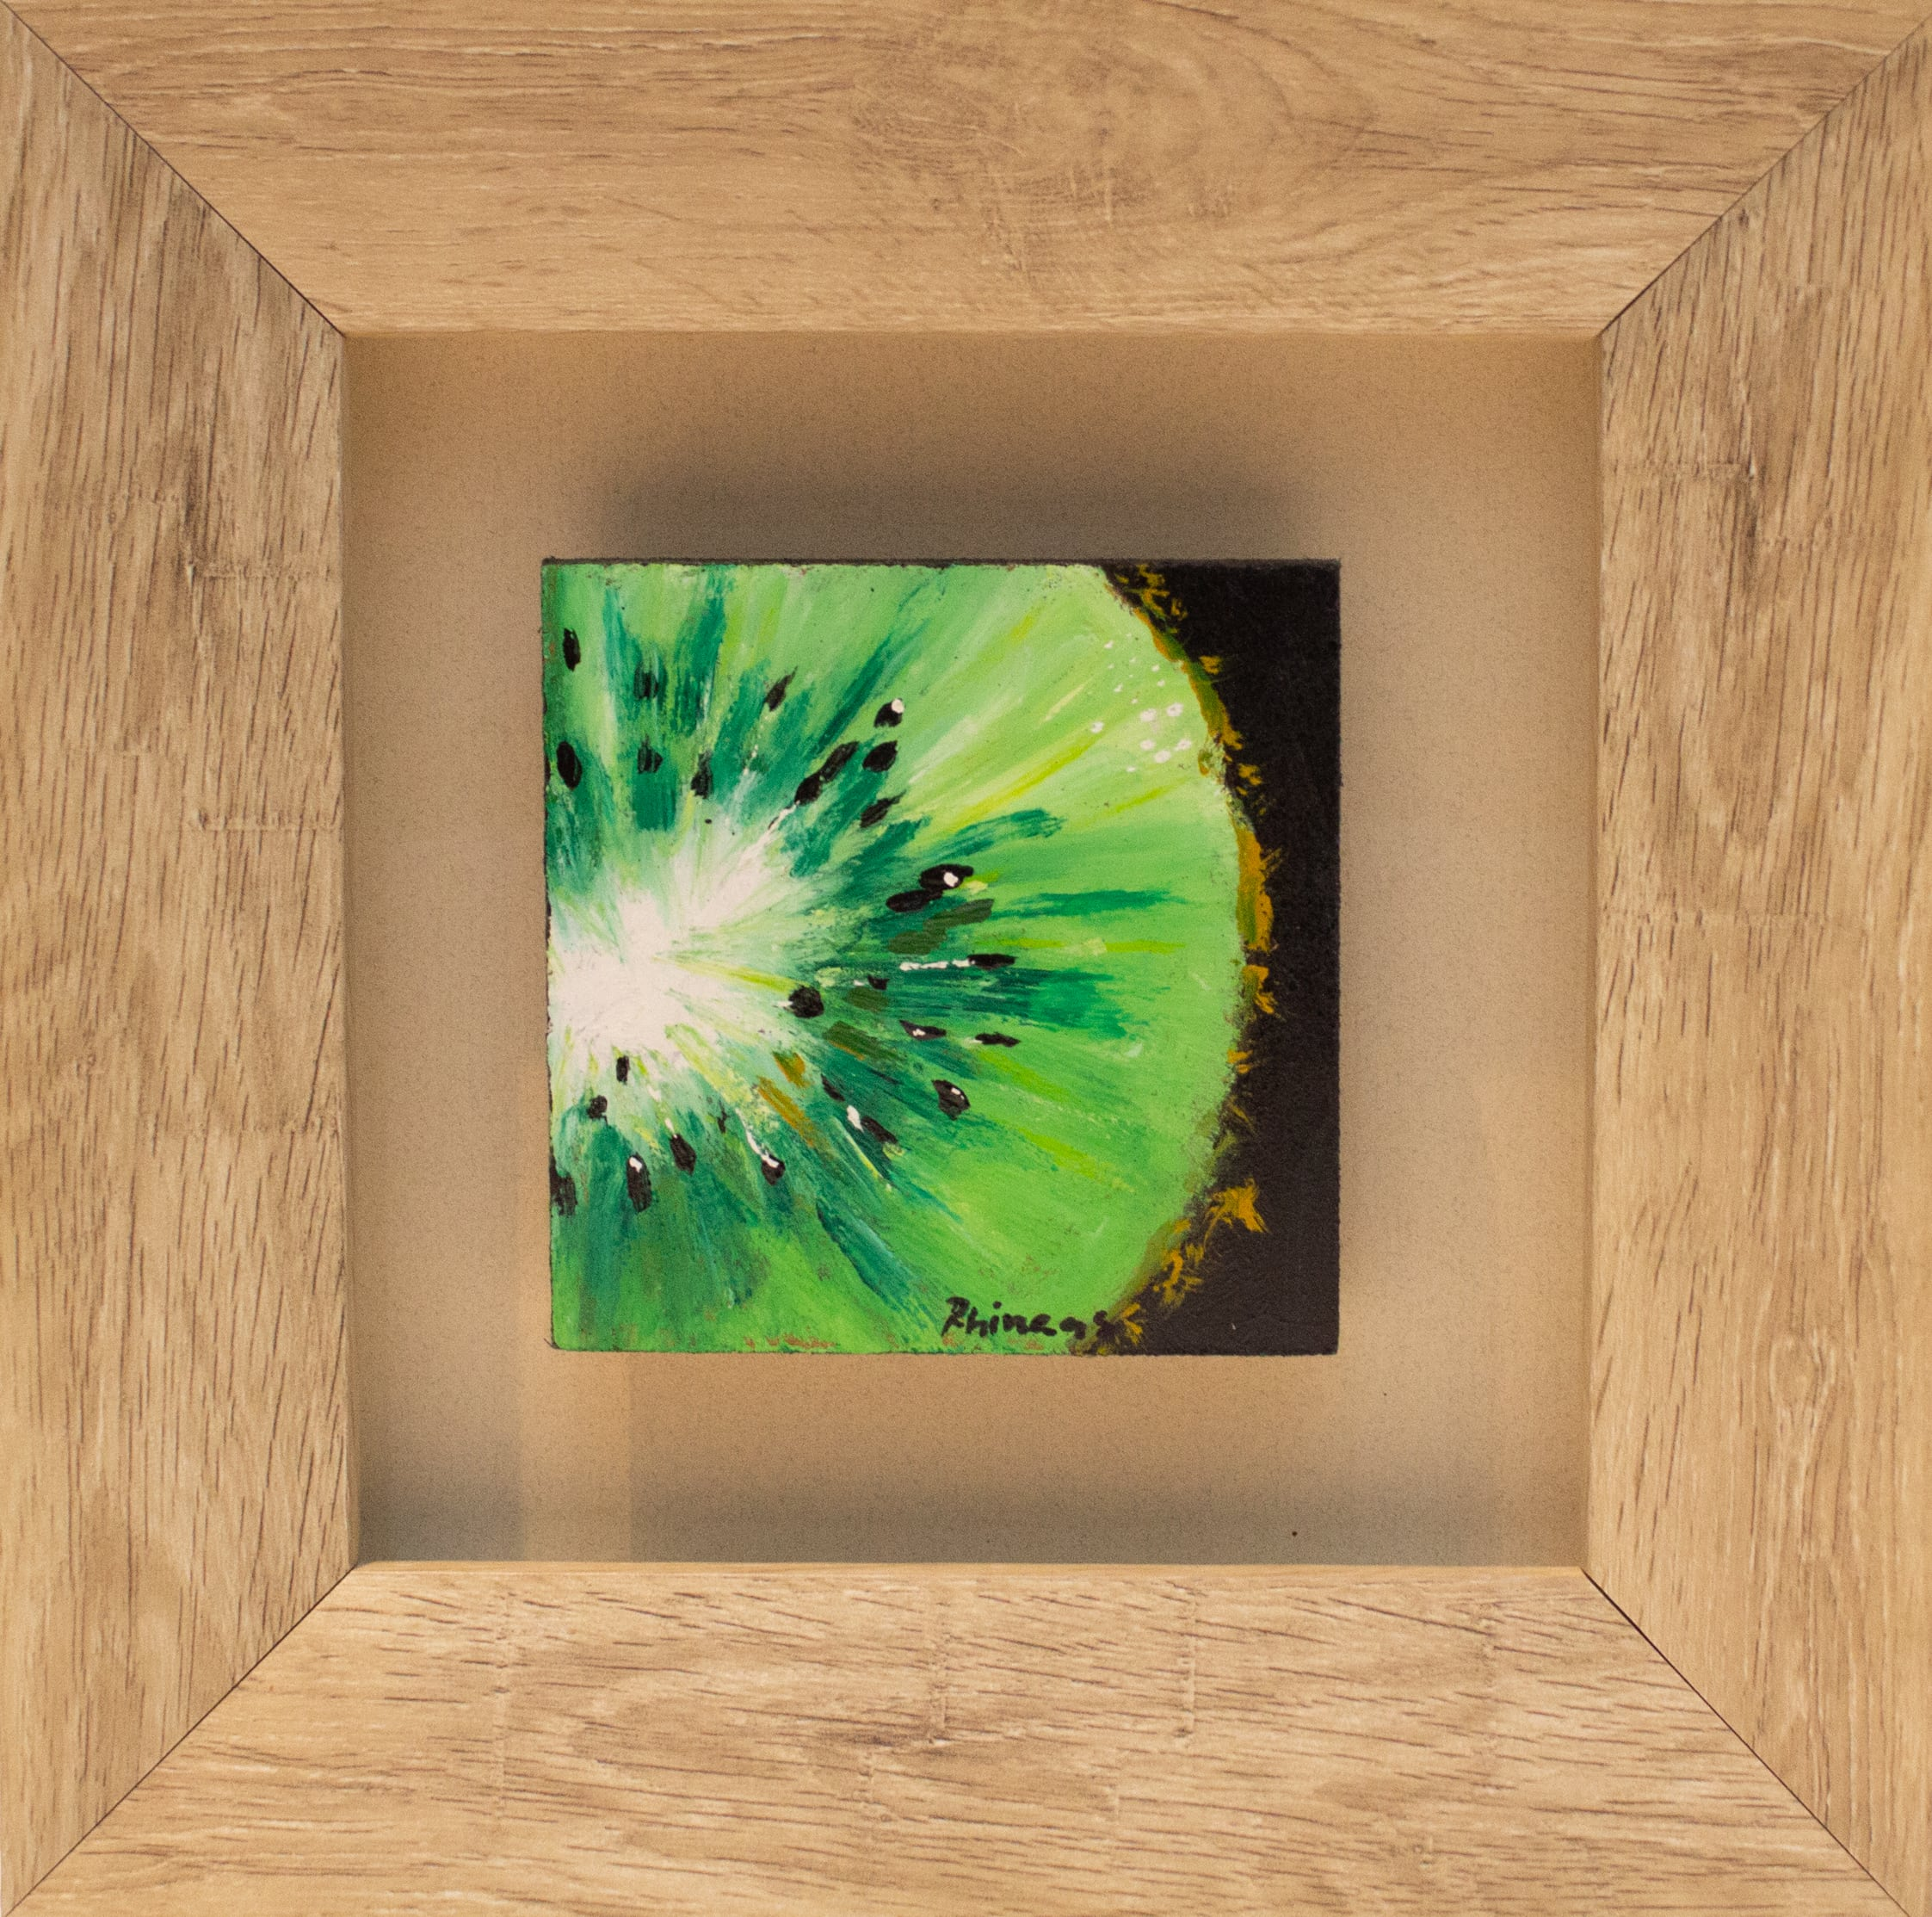 <span class=&#34;link fancybox-details-link&#34;><a href=&#34;/artists/102-phineas-malema/works/2711-phineas-malema-kiwi-fruit-2017/&#34;>View Detail Page</a></span><div class=&#34;artist&#34;><strong>Phineas Malema</strong></div> <div class=&#34;title&#34;><em>Kiwi Fruit</em>, 2017</div> <div class=&#34;medium&#34;>Oil On Board</div> <div class=&#34;dimensions&#34;>24cm x 24cm x 4.5cm</div><div class=&#34;price&#34;>R700.00</div>